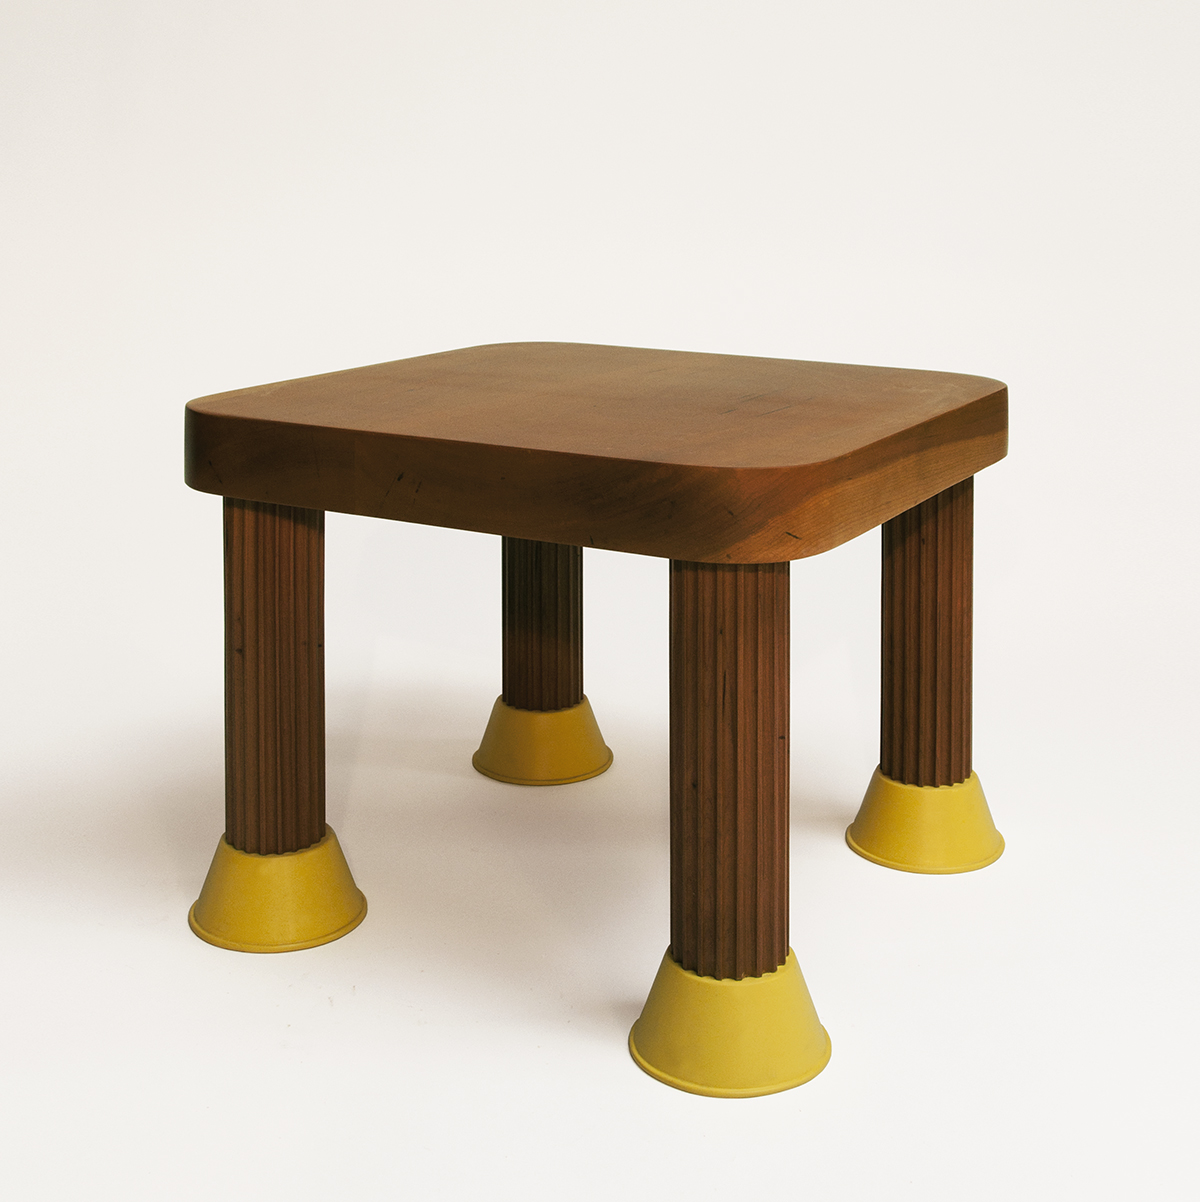 matthew sullivan AQQ walnut table